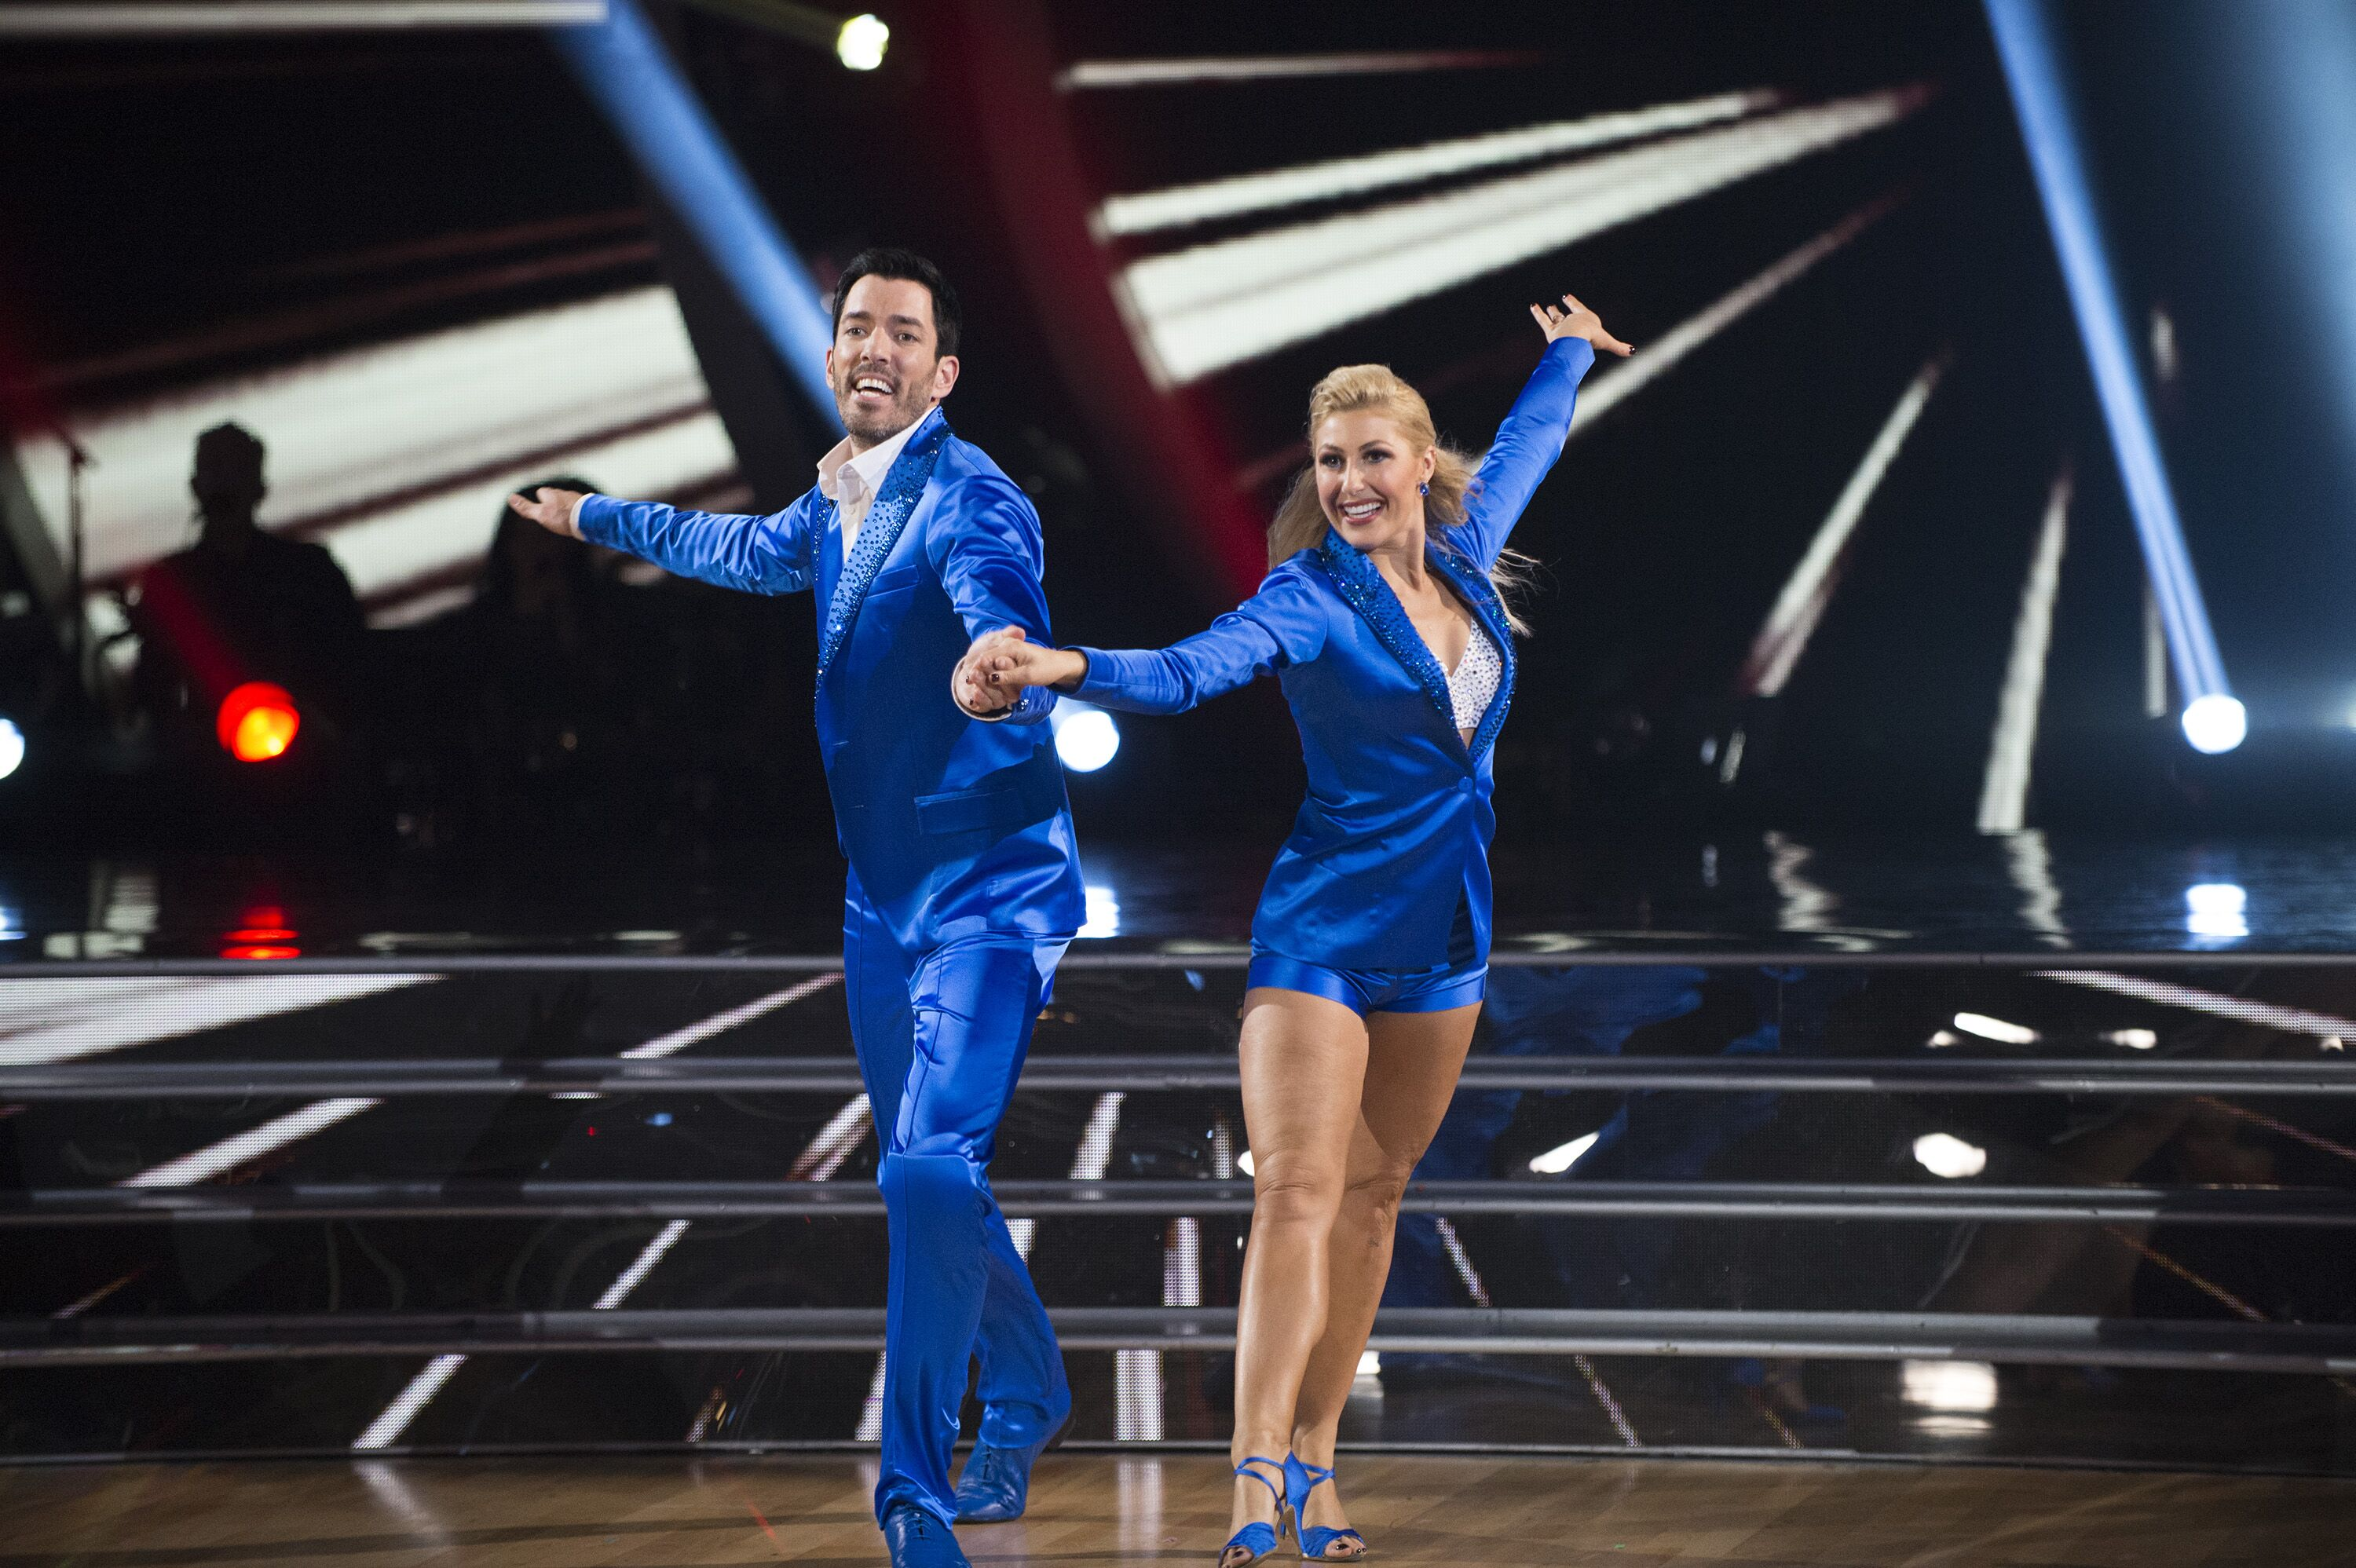 Dancing Stars Gallery: How To Watch Dancing With The Stars Season 25, Episode 6